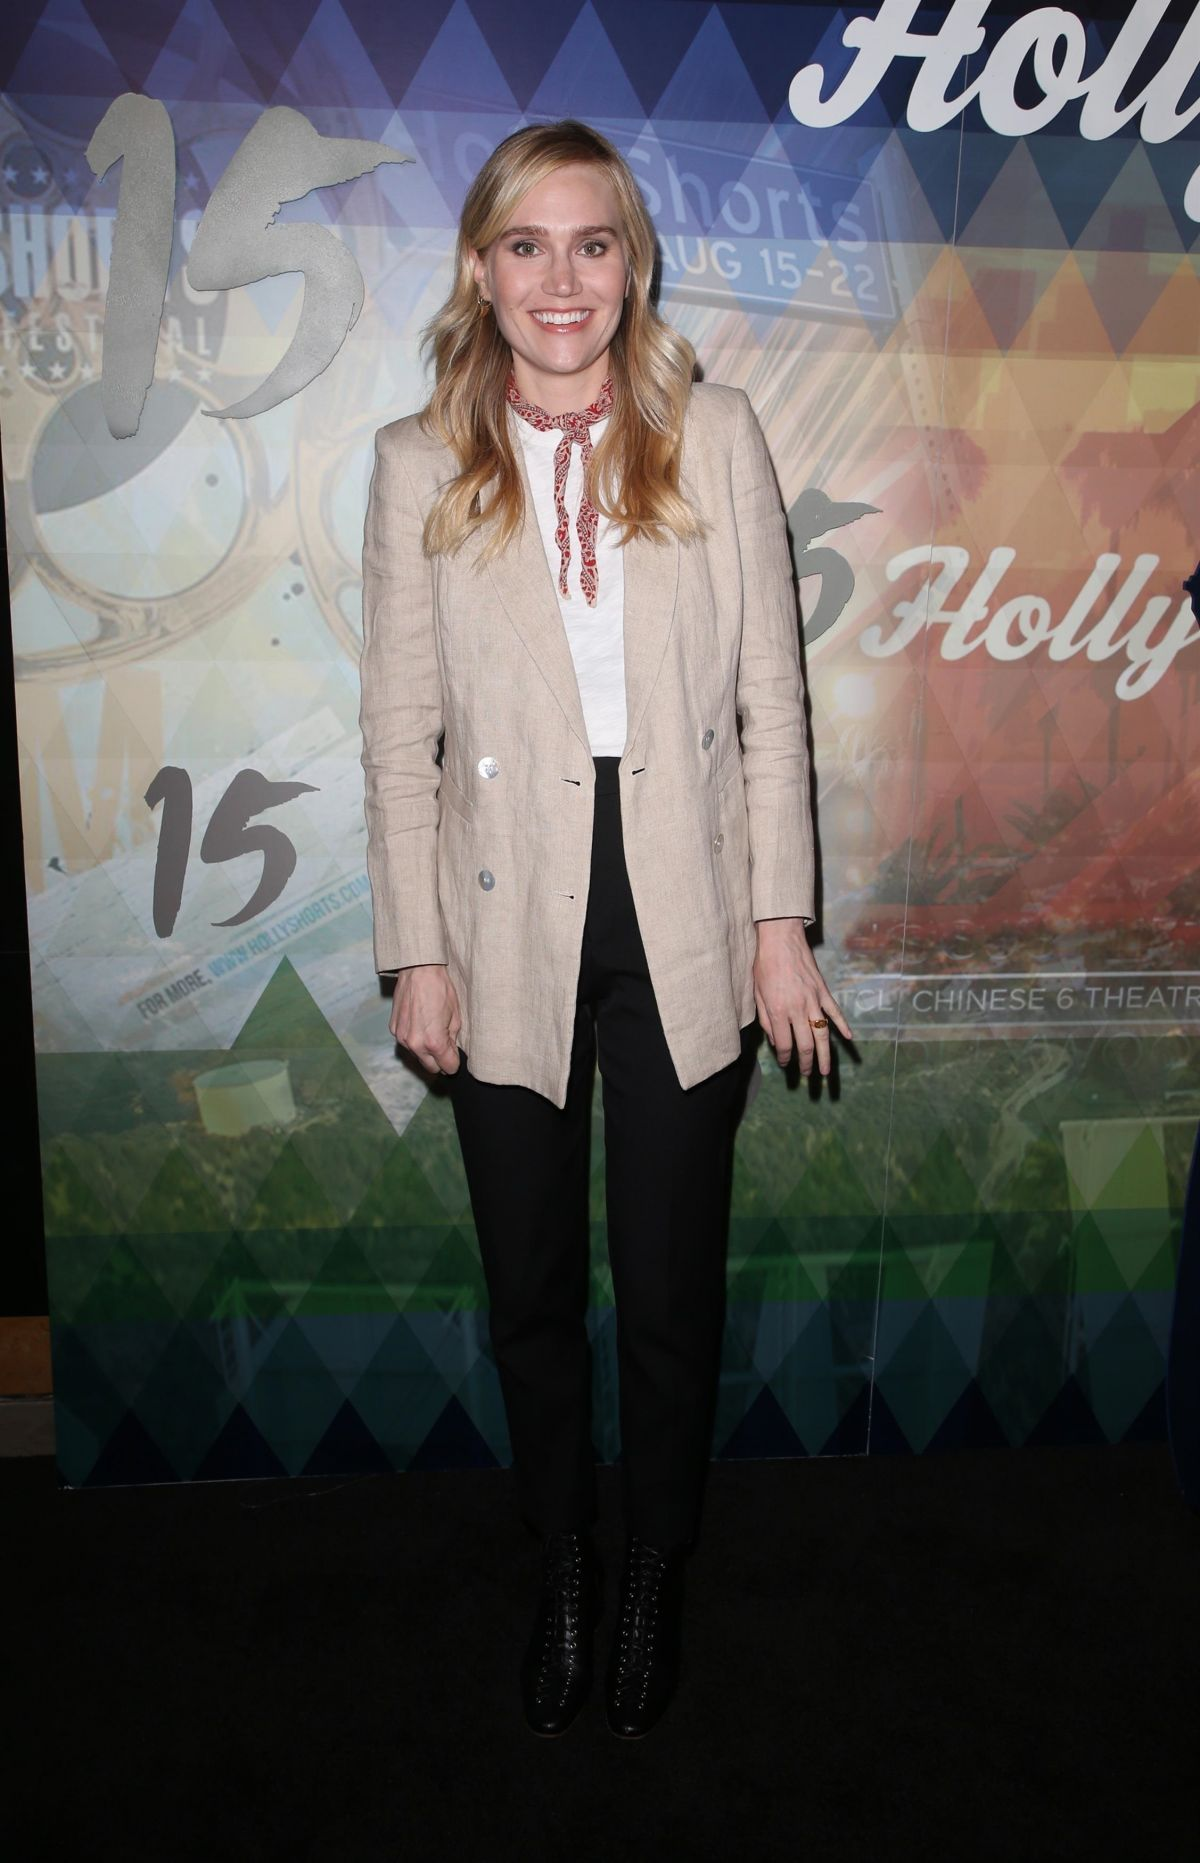 Nora Kirkpatrick At 15th Annual Oscar Qualifying Hollyshorts Film Festival Opening Night Gala Hollywood Celebzz Celebzz Get all the details on nora kirkpatrick, watch interviews and videos, and see what else bing knows. celebzz